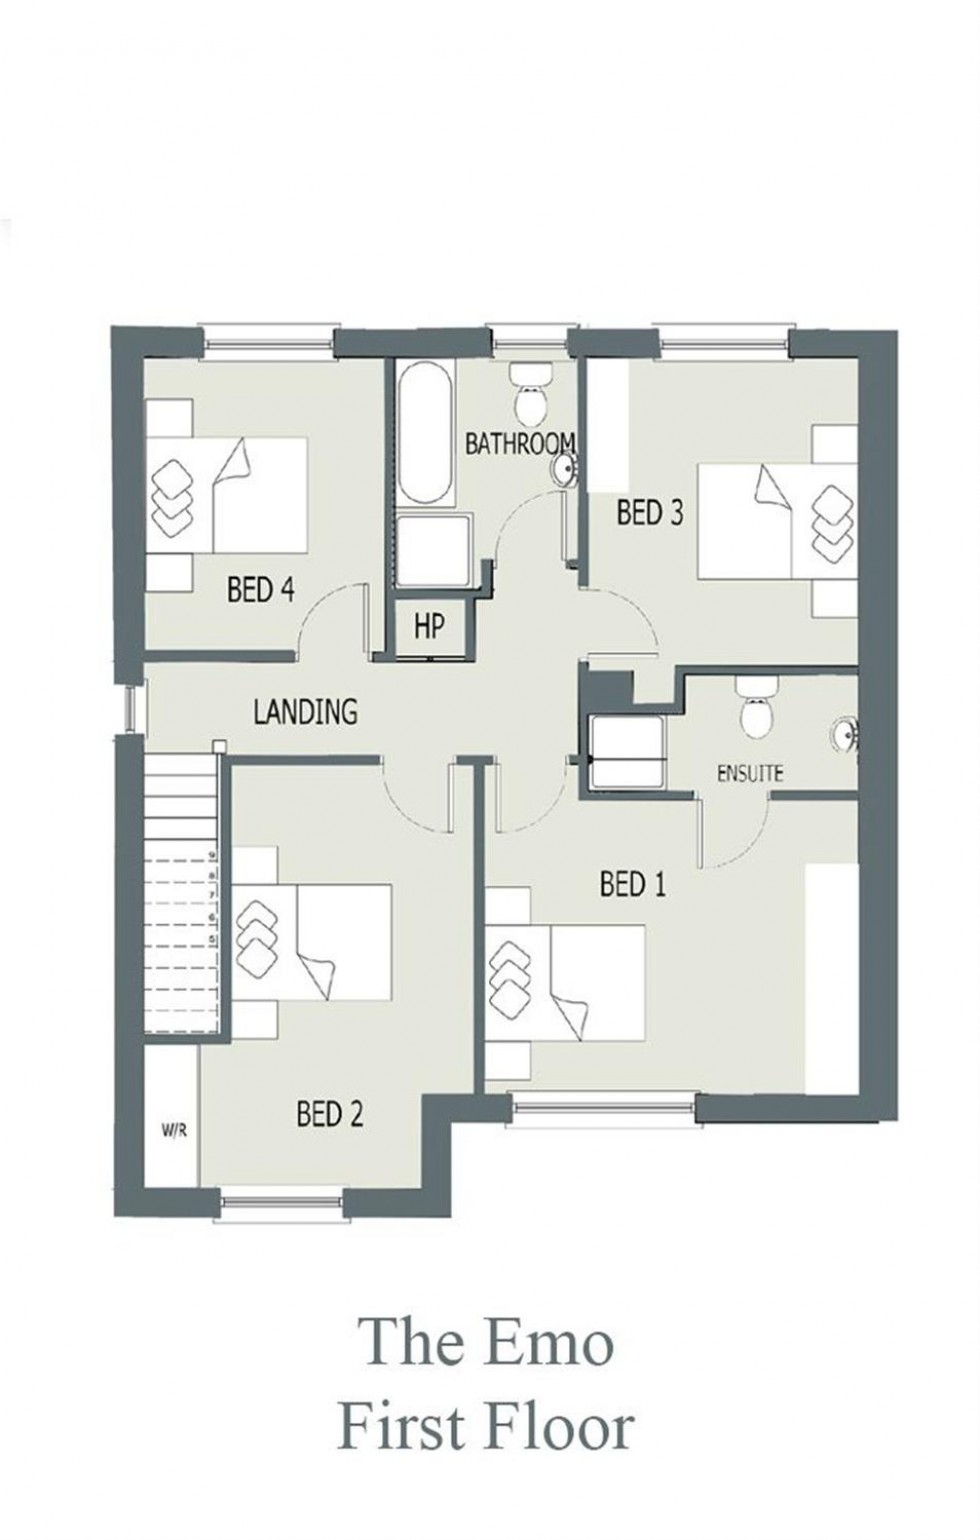 Floorplan for The Emo 4 Bedroom 2020, Ashewood Walk, Stradbally Road, Portlaoise, Co. Laois